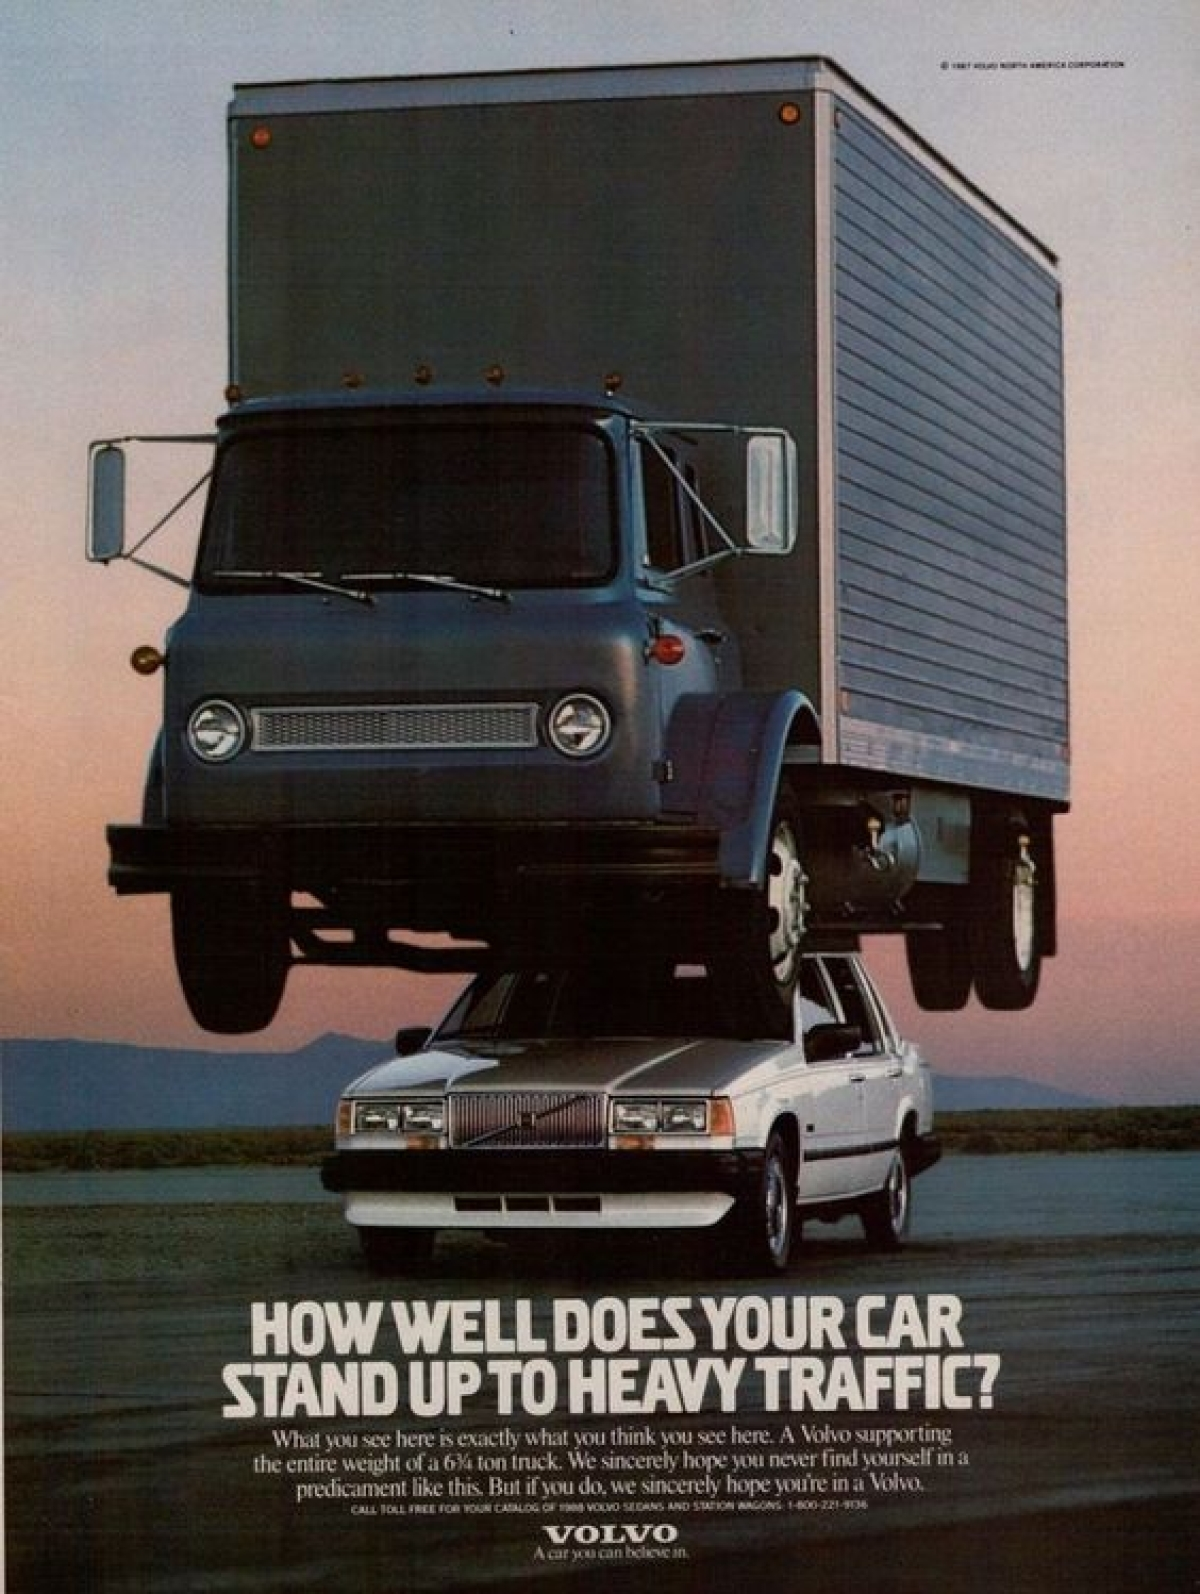 1988 Print ad for Volvo 740 Sedan